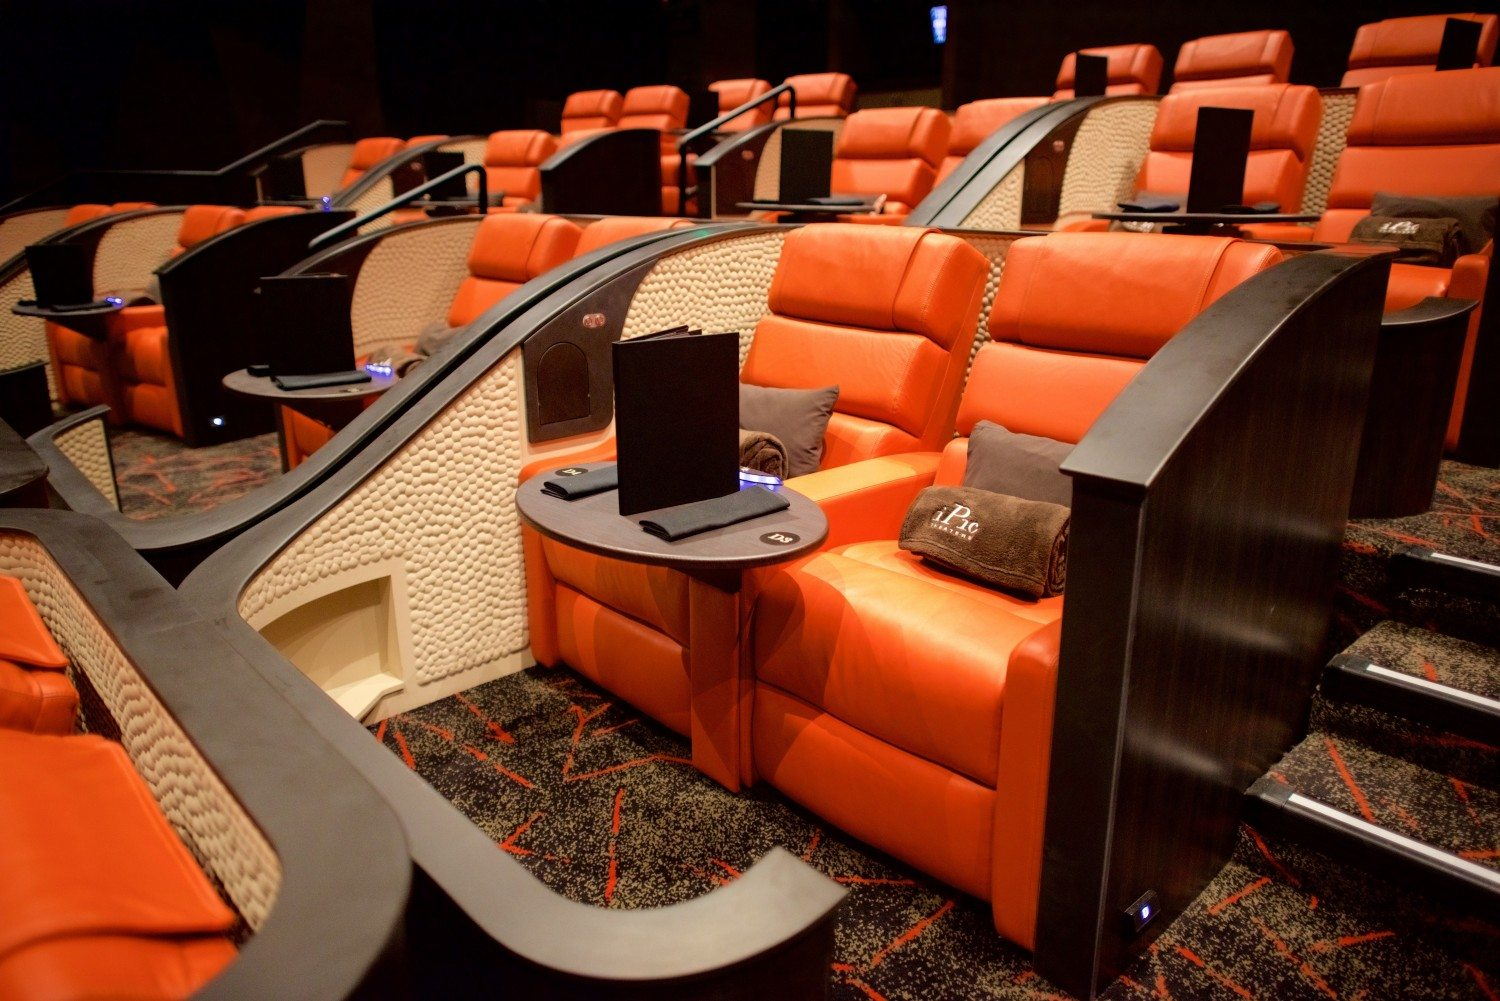 iPic now open in the South Street Seaport